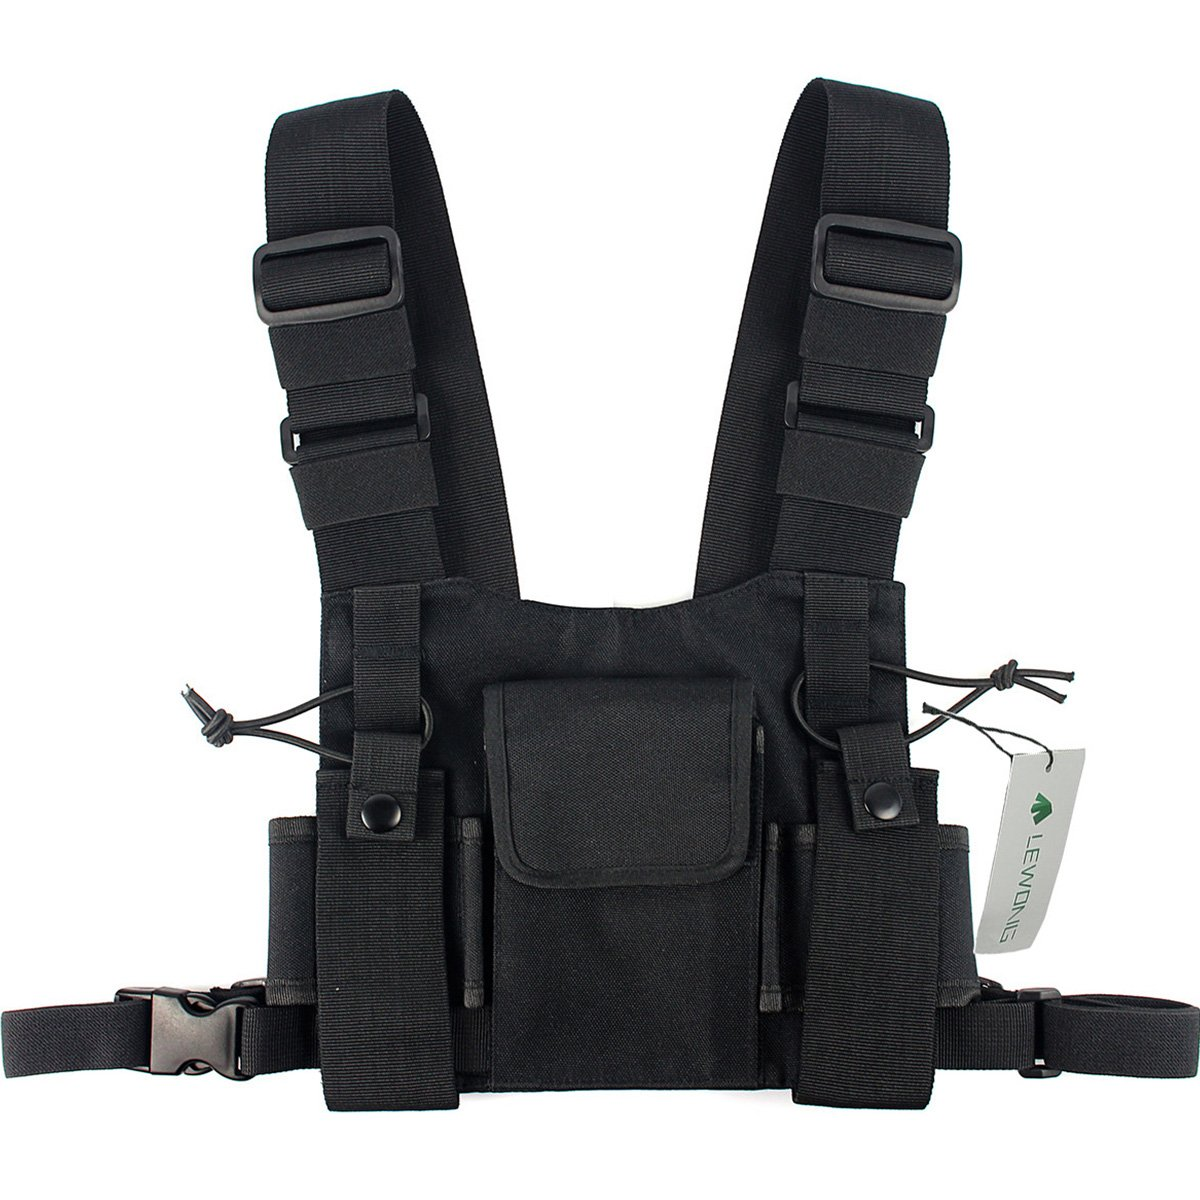 Lewong Universal Radio Chest Harness Bag Pocket Pack Holster for Two Way Radio (Rescue Essentials) by Lewong